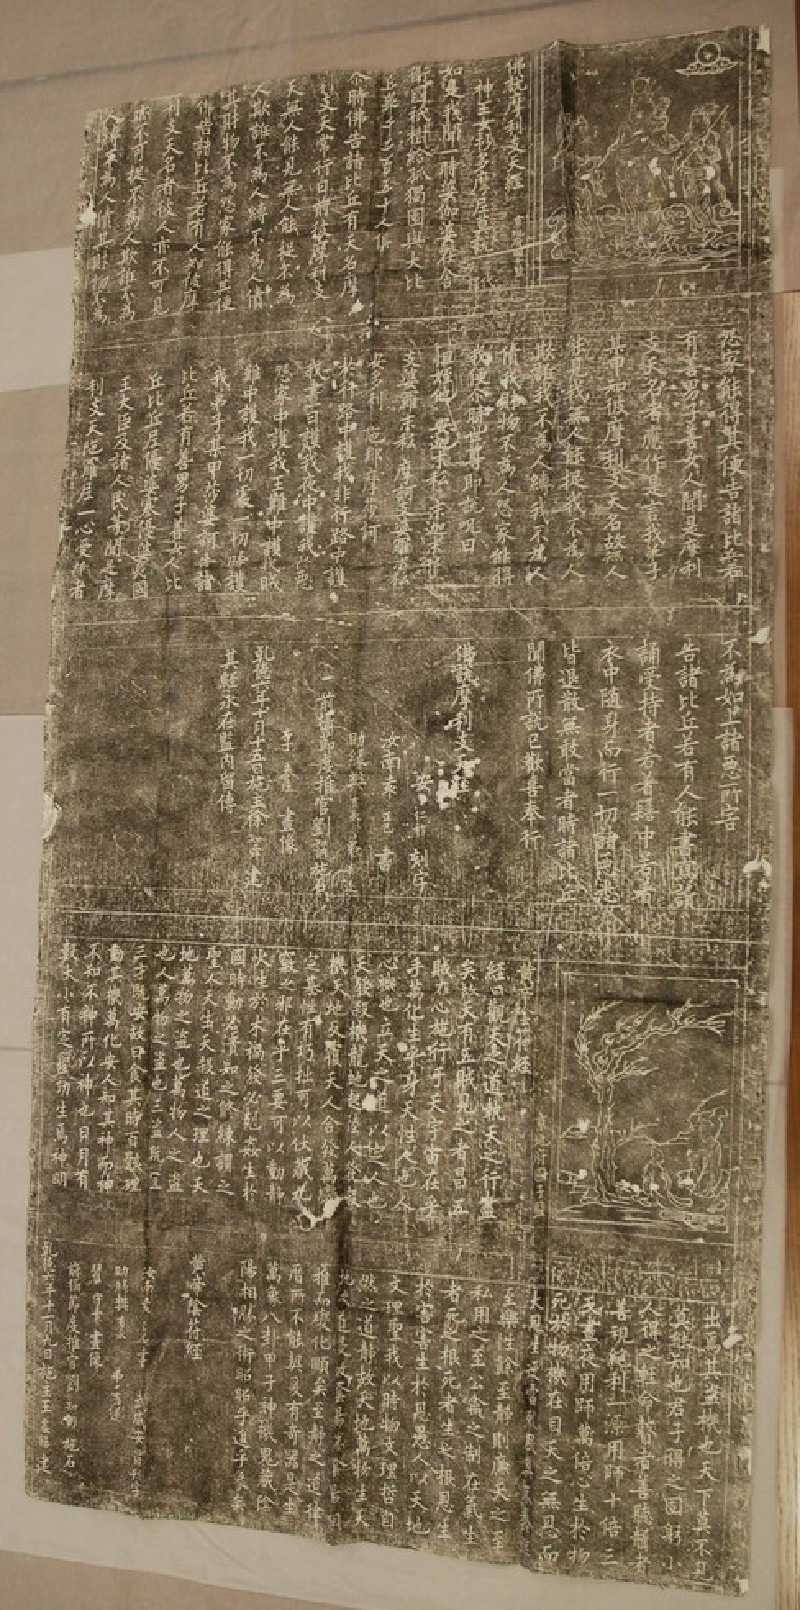 Stele of Buddhist and Daoist scriptures with illustrations (EA1956.629, record shot)